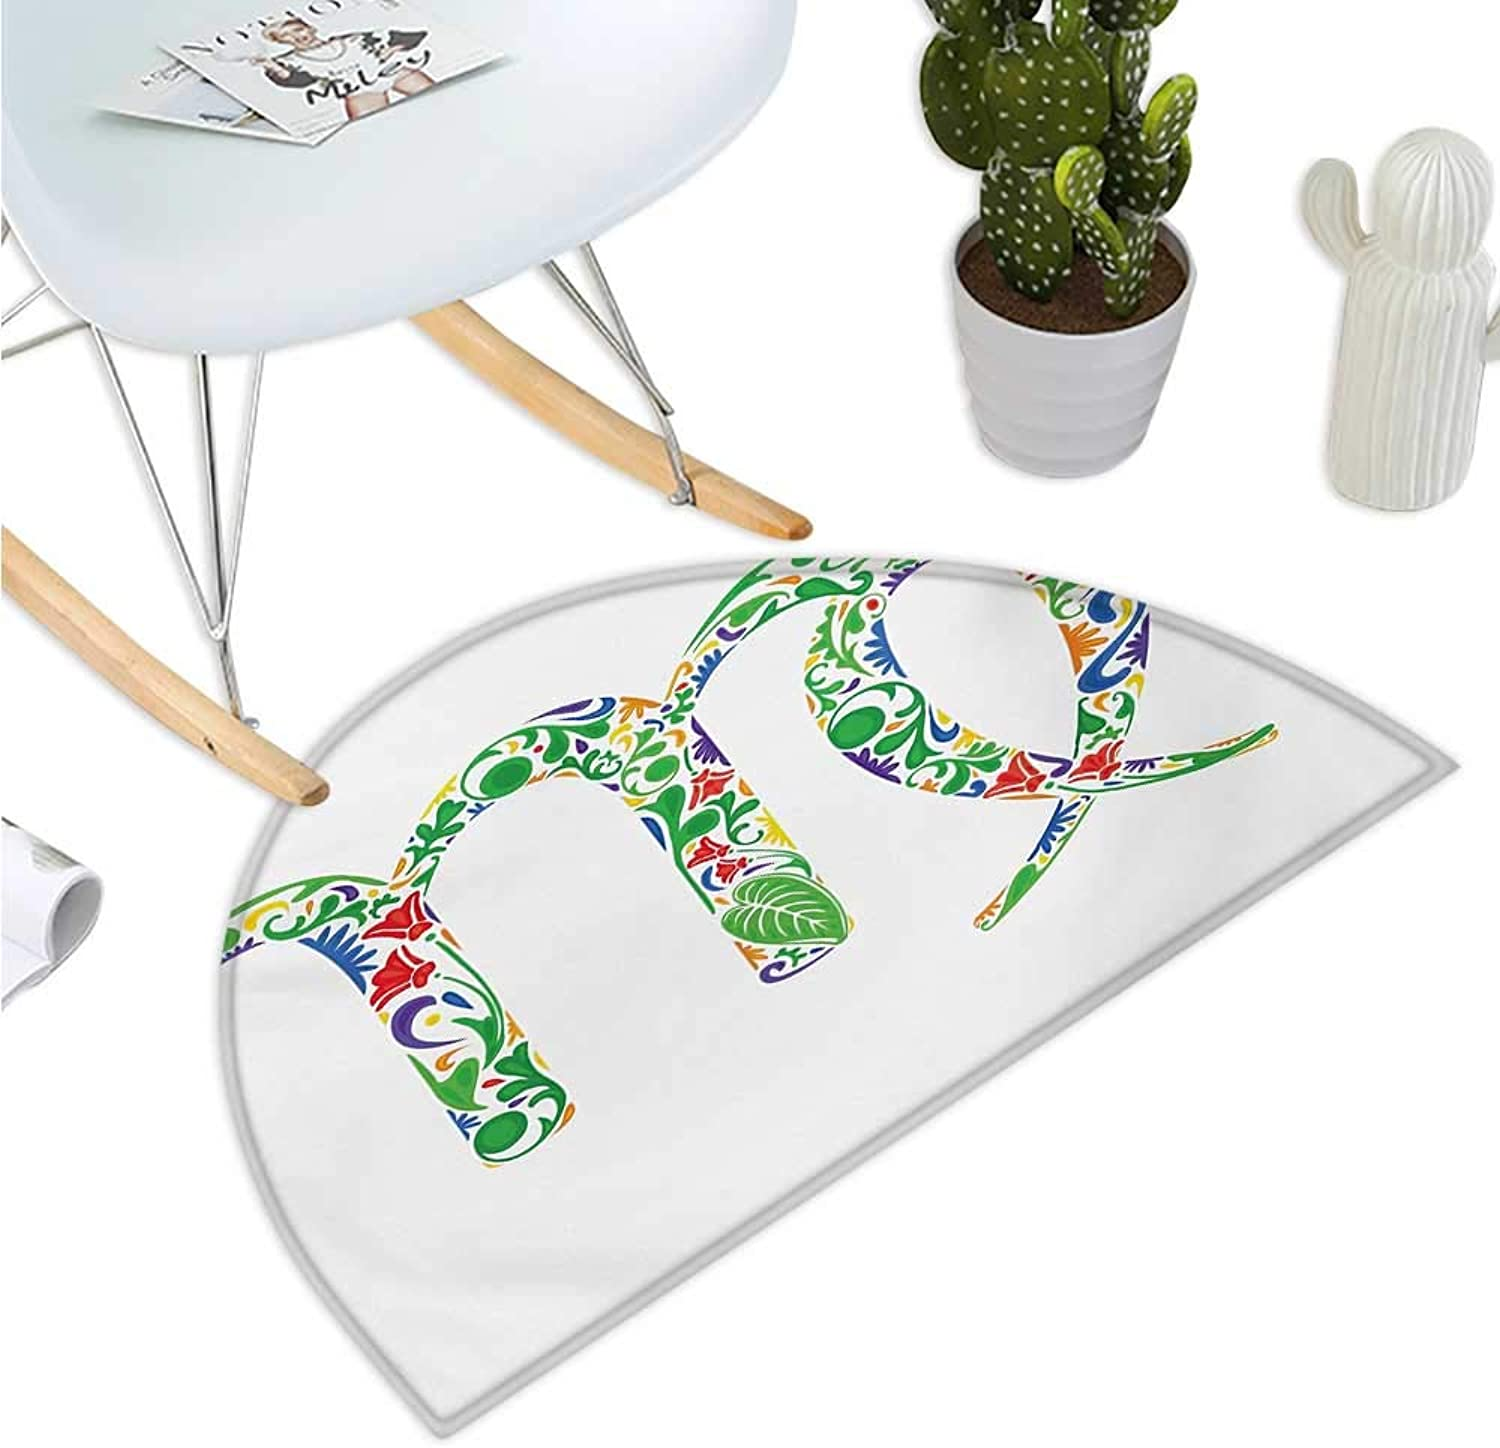 Zodiac Virgo Semicircular Cushion Floral Symbol with Blossoms and Green Leaves Artistic and colorful Ornaments Entry Door Mat H 39.3  xD 59  Multicolor